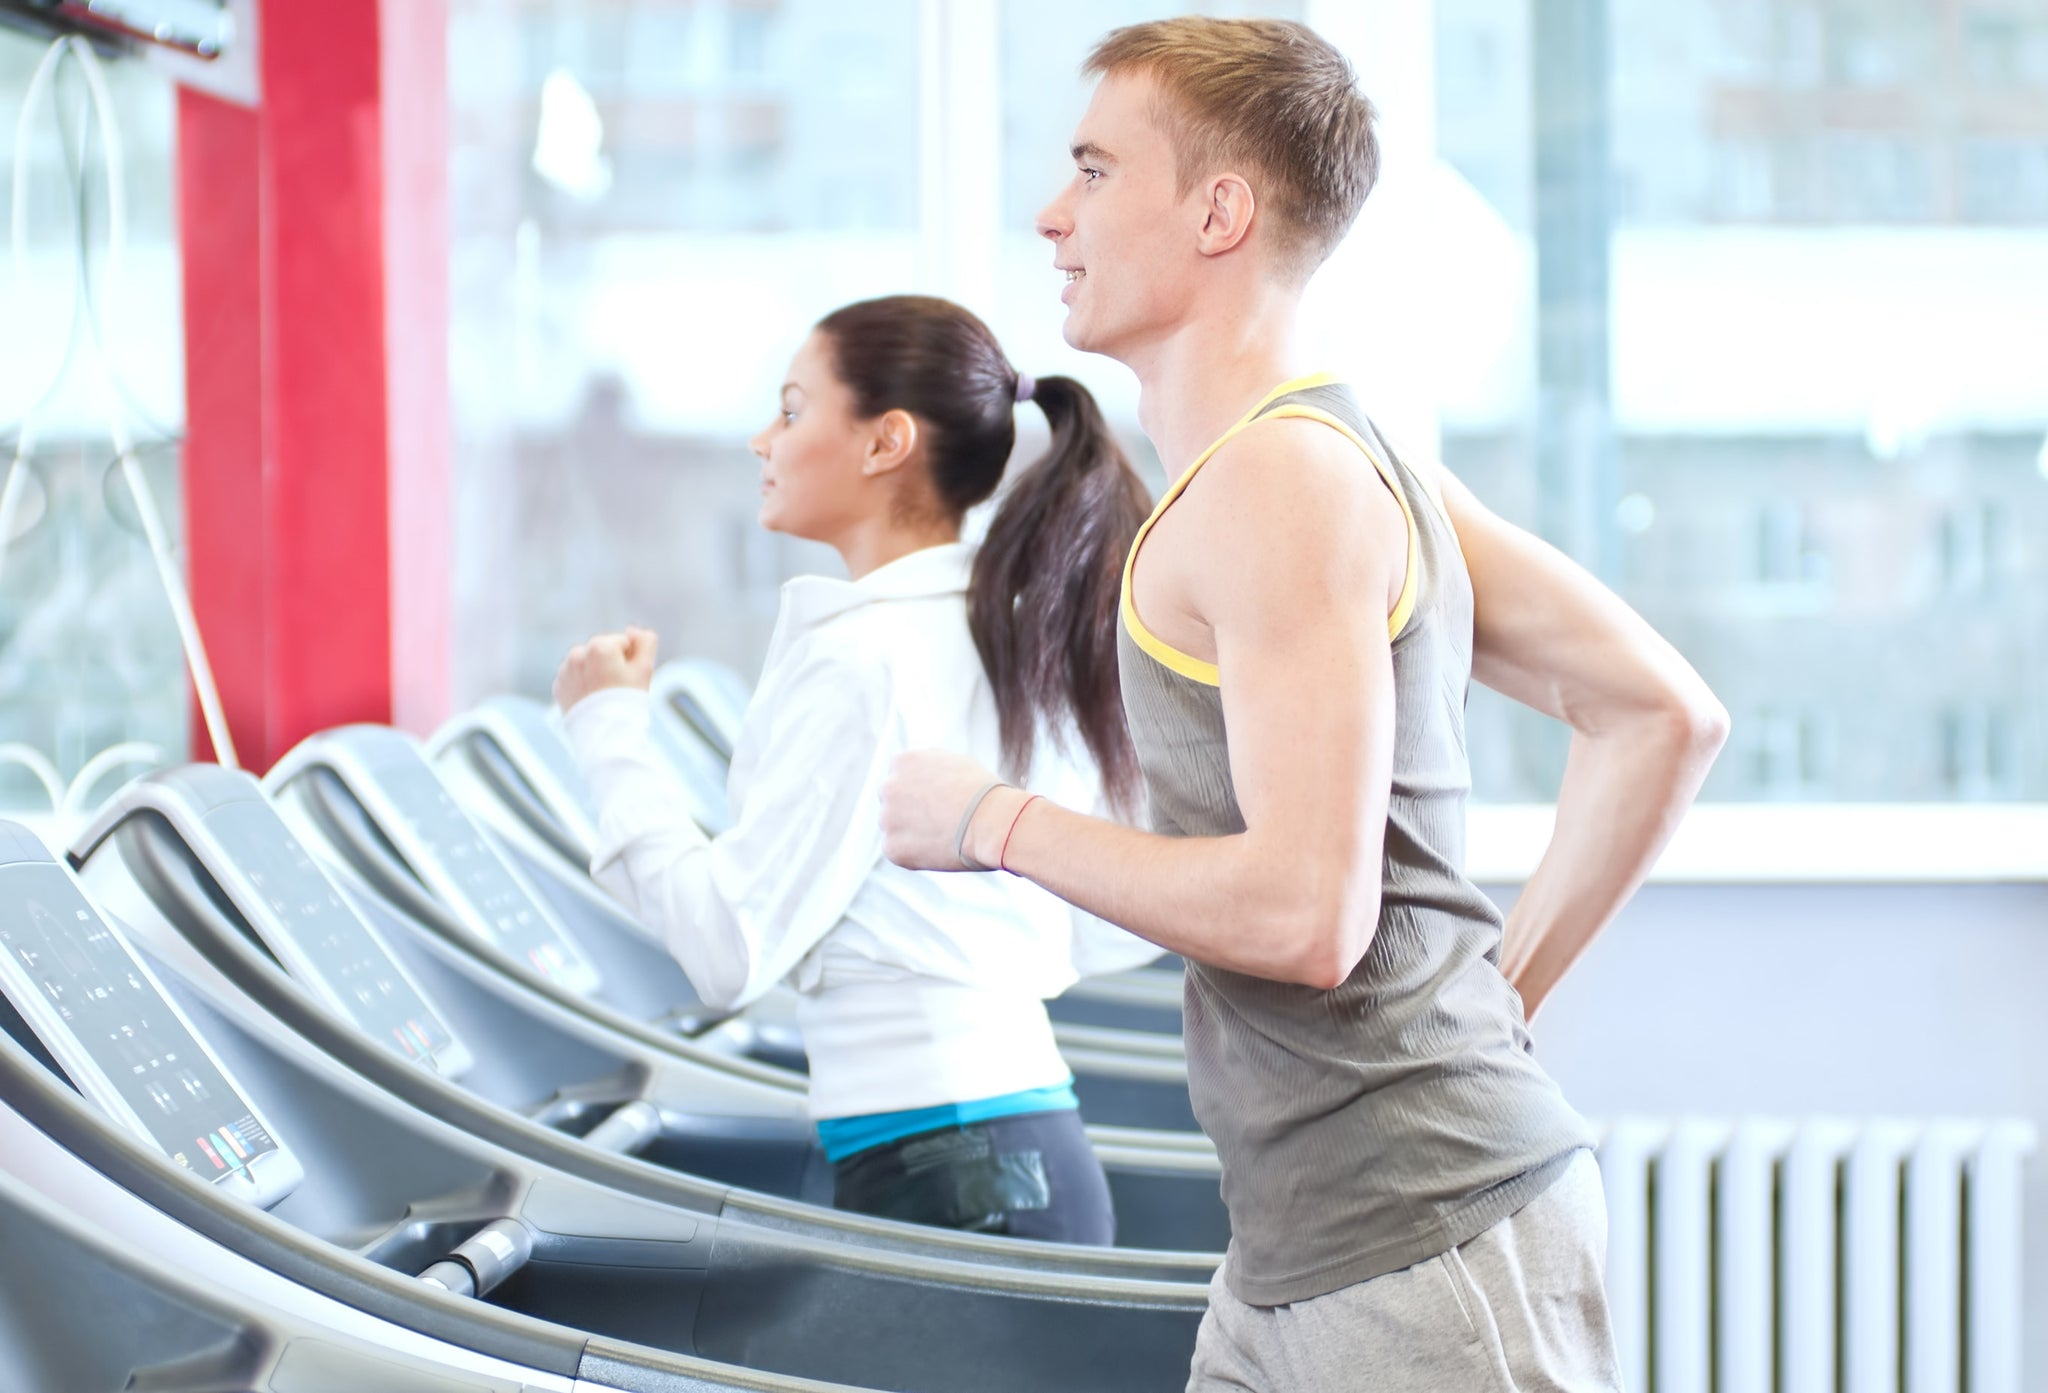 A woman and a man running on a treadmill